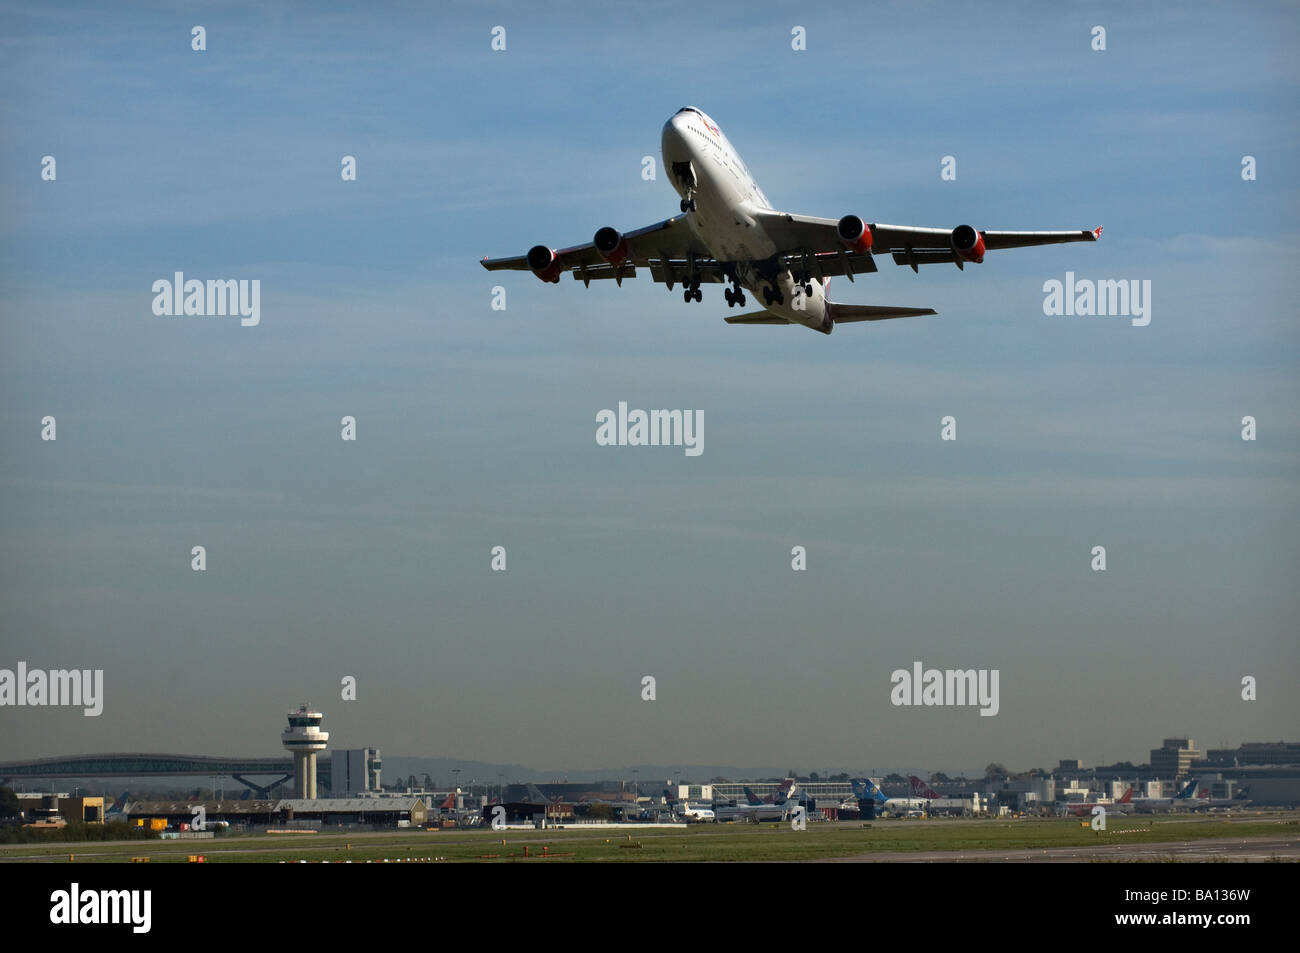 A Virgin Atlantic Boeing 747 Jumbo Jet takes off from Gatwick Airport West Sussex on a transatlantic flight - Stock Image